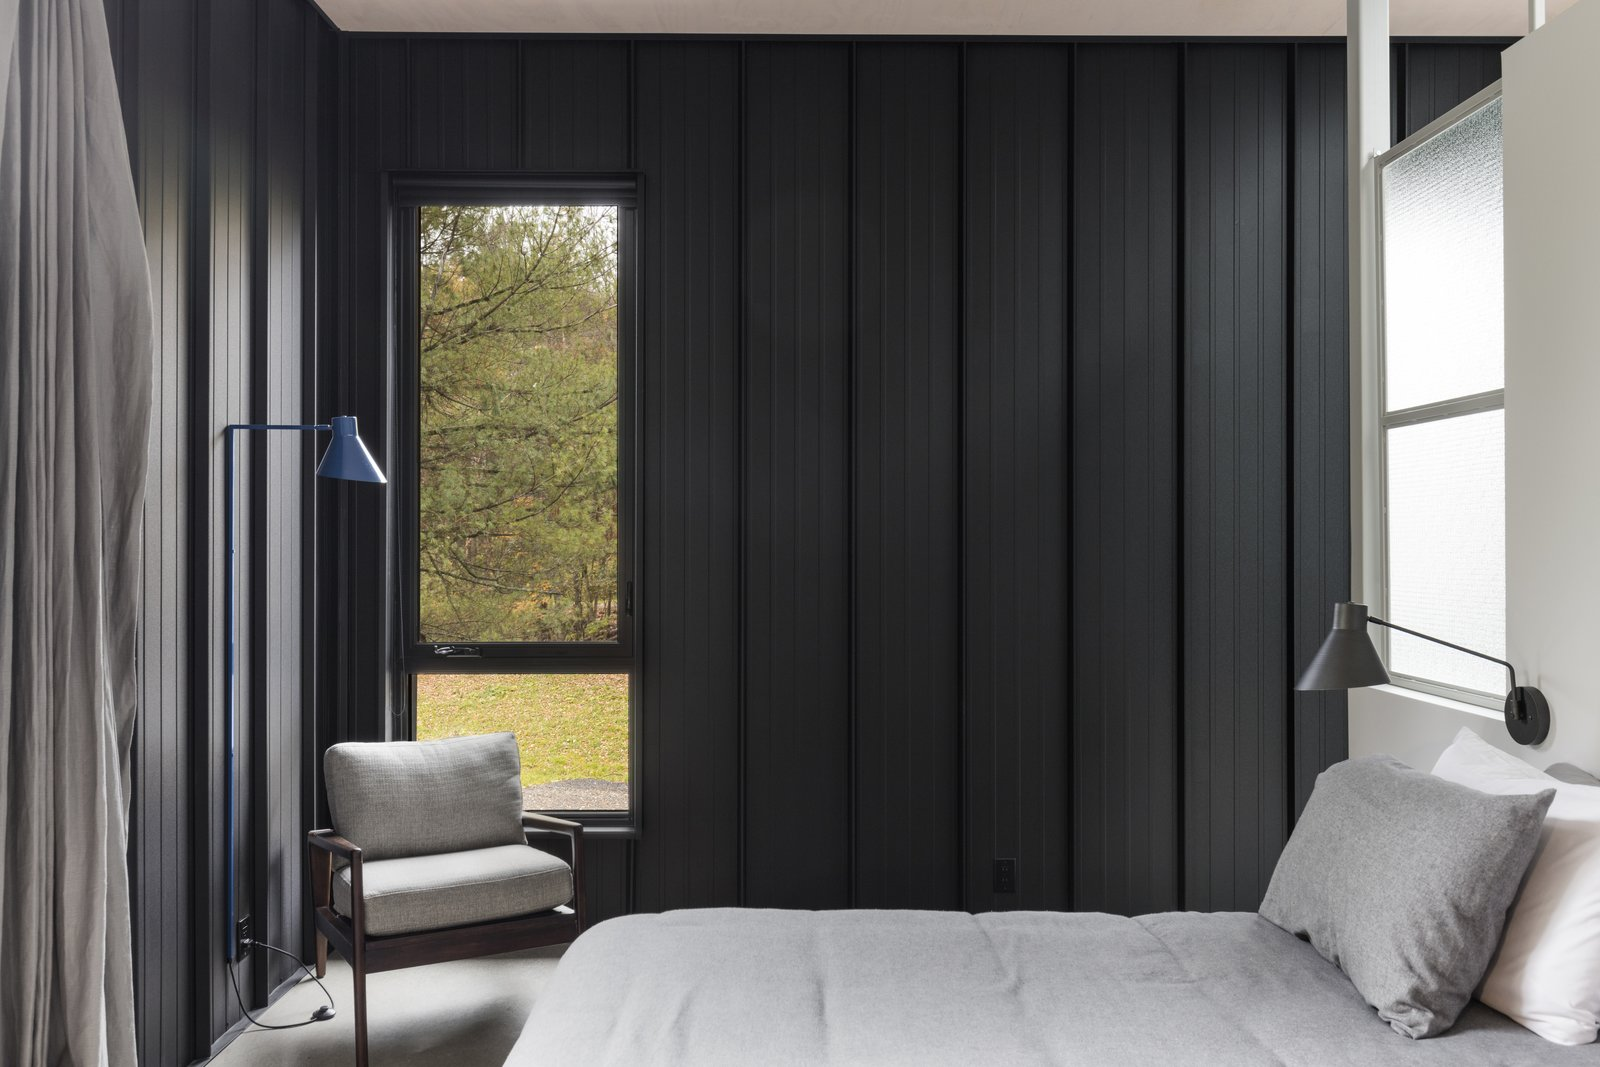 Abercorn Chalet bedroom with black corrugated metal walls